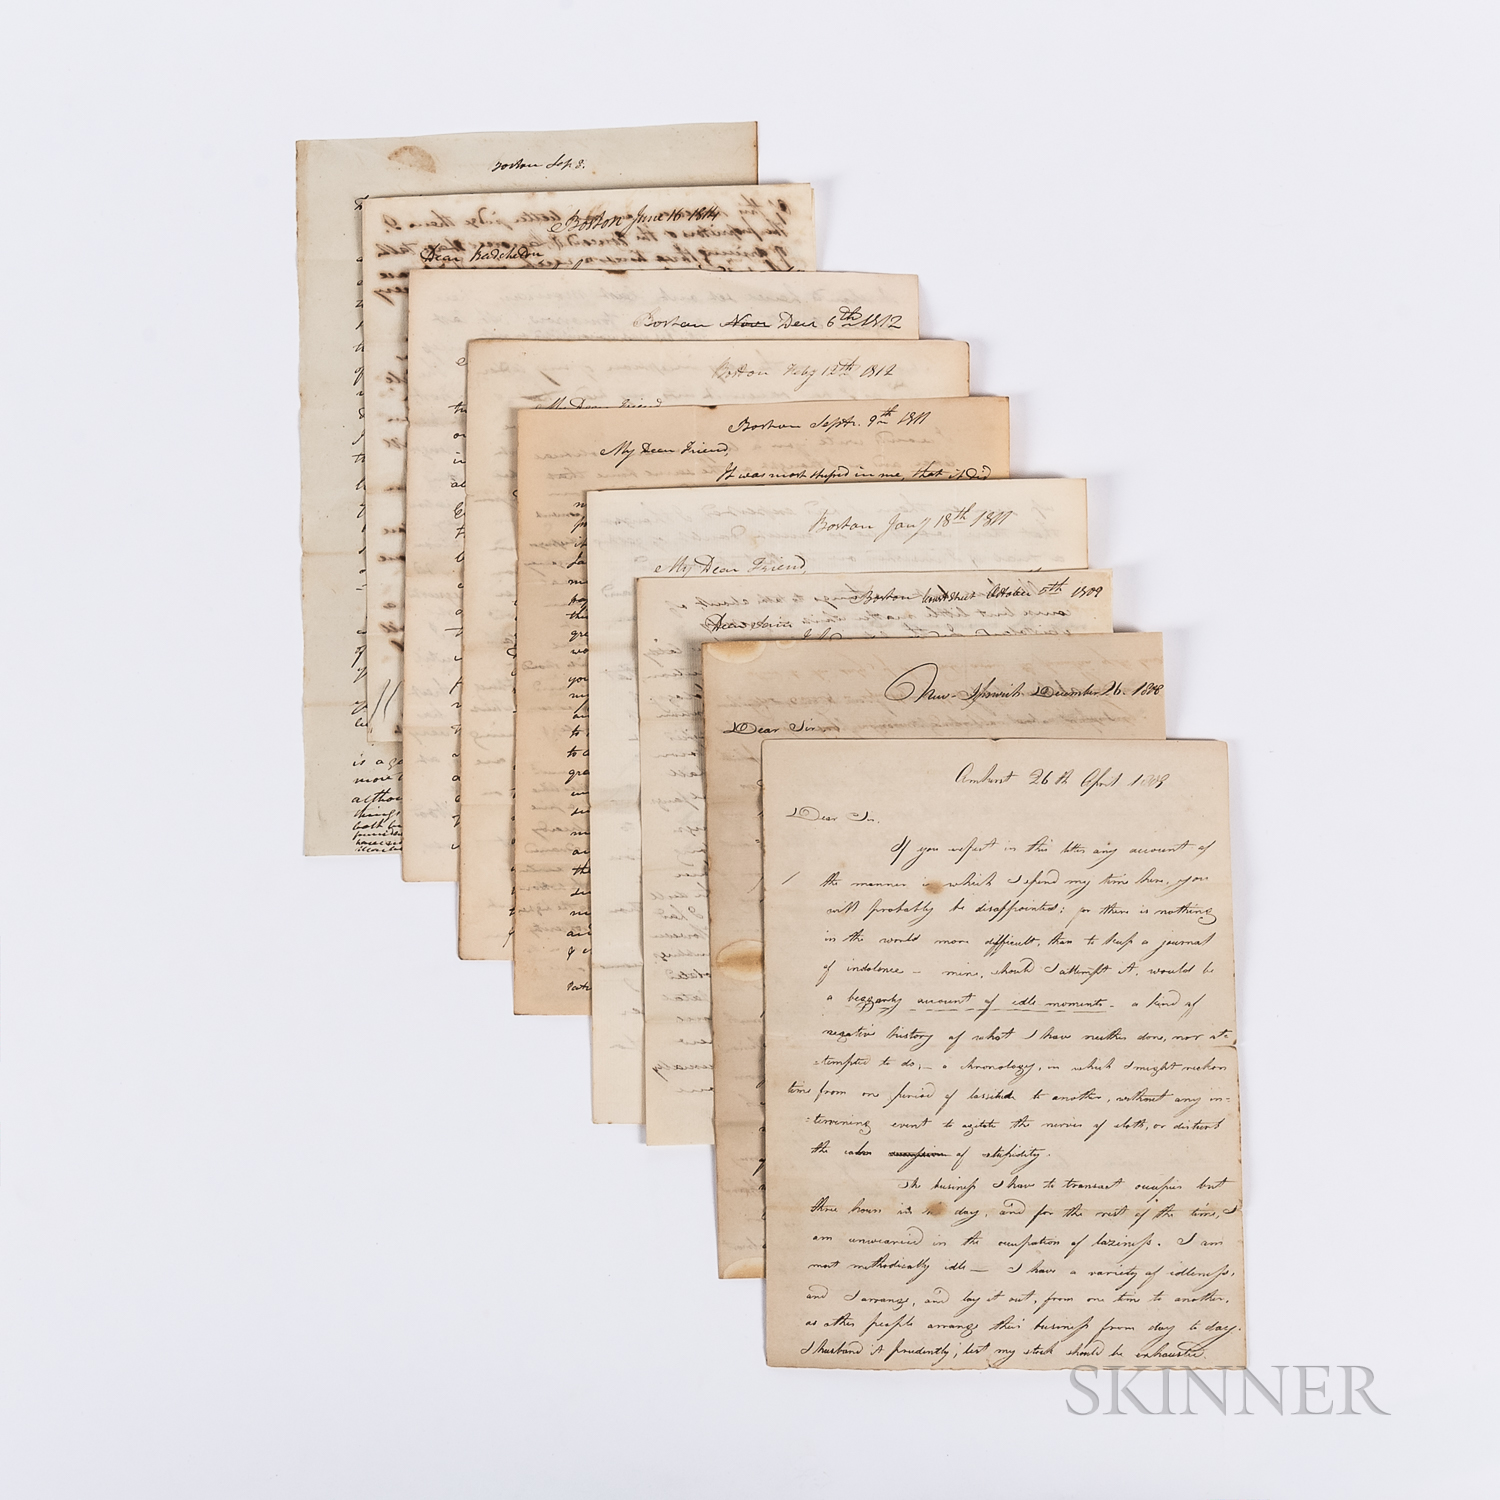 Twenty-two Letters and Documents Regarding the Business and Personal Affairs of Samuel Batchelder, 1808-1827.